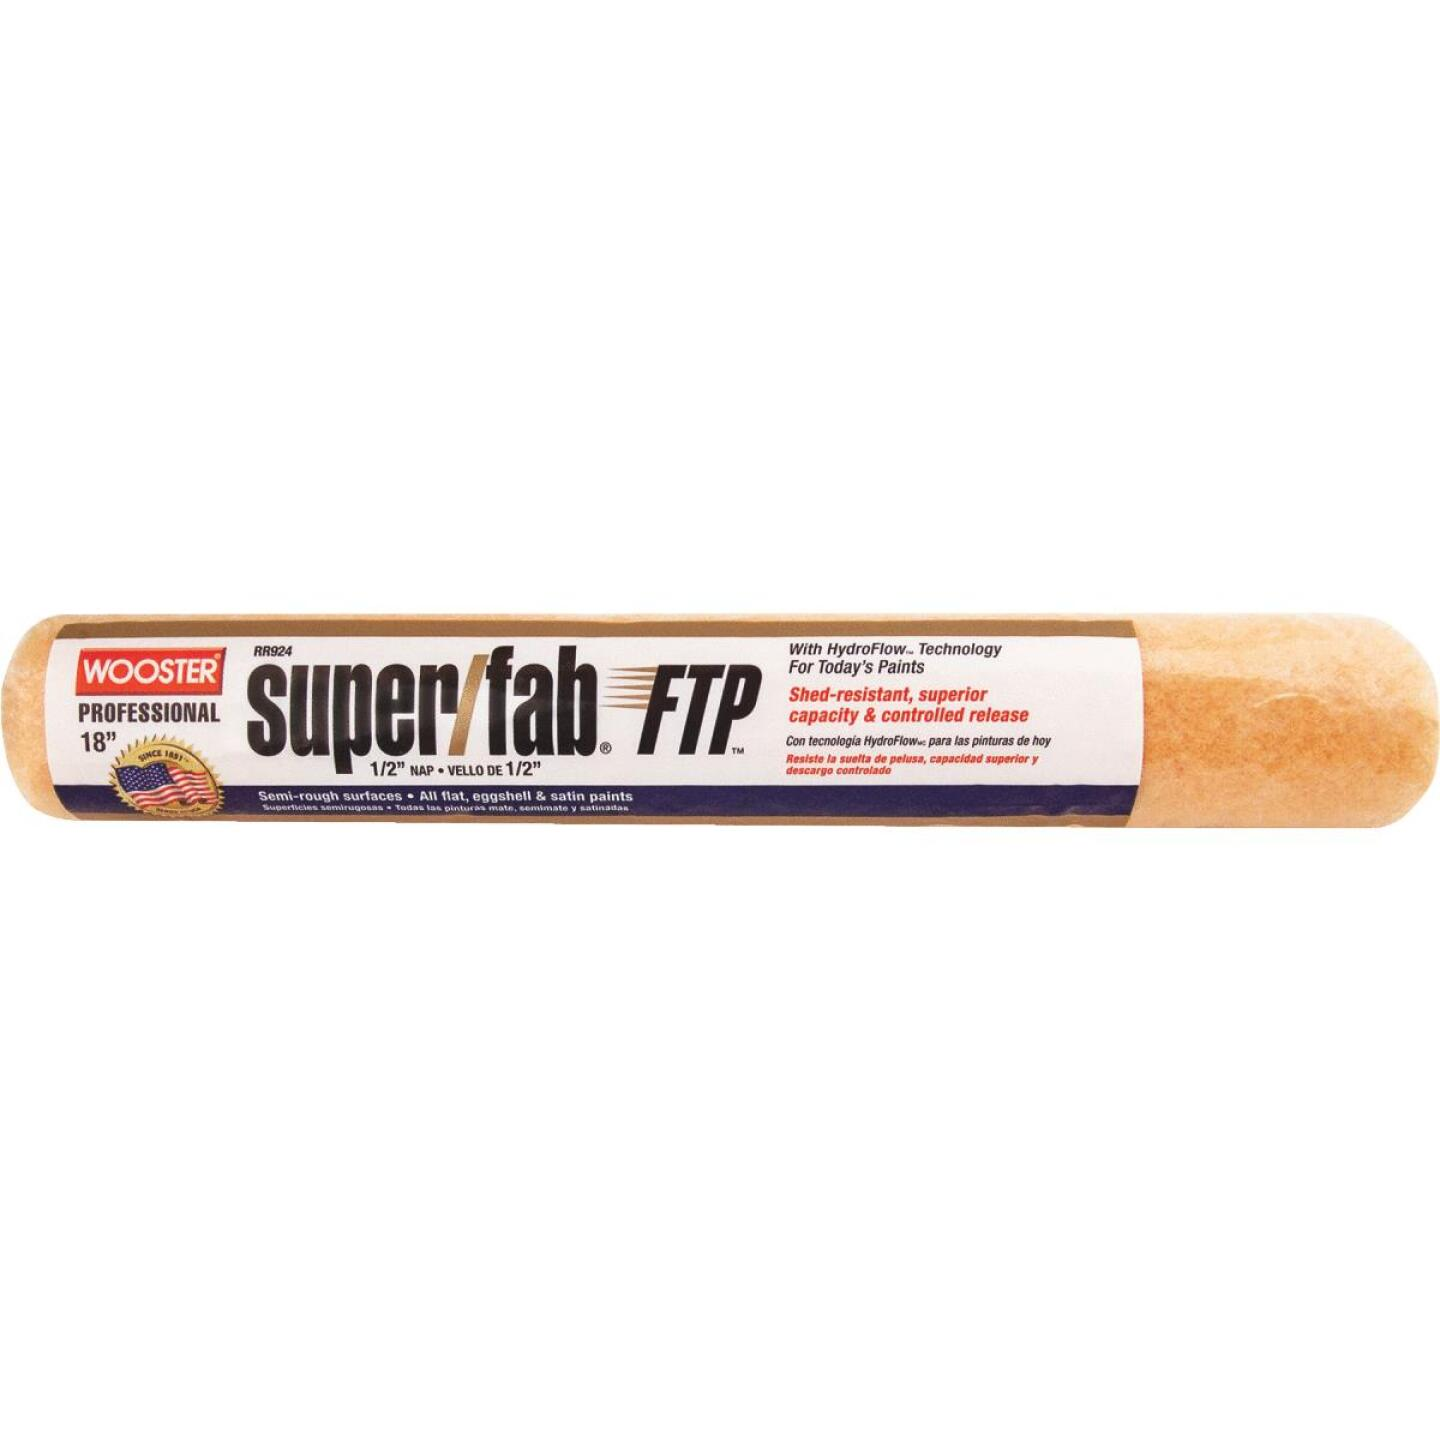 Wooster Super/Fab FTP 18 In. x 1/2 In. Knit Fabric Roller Cover Image 1